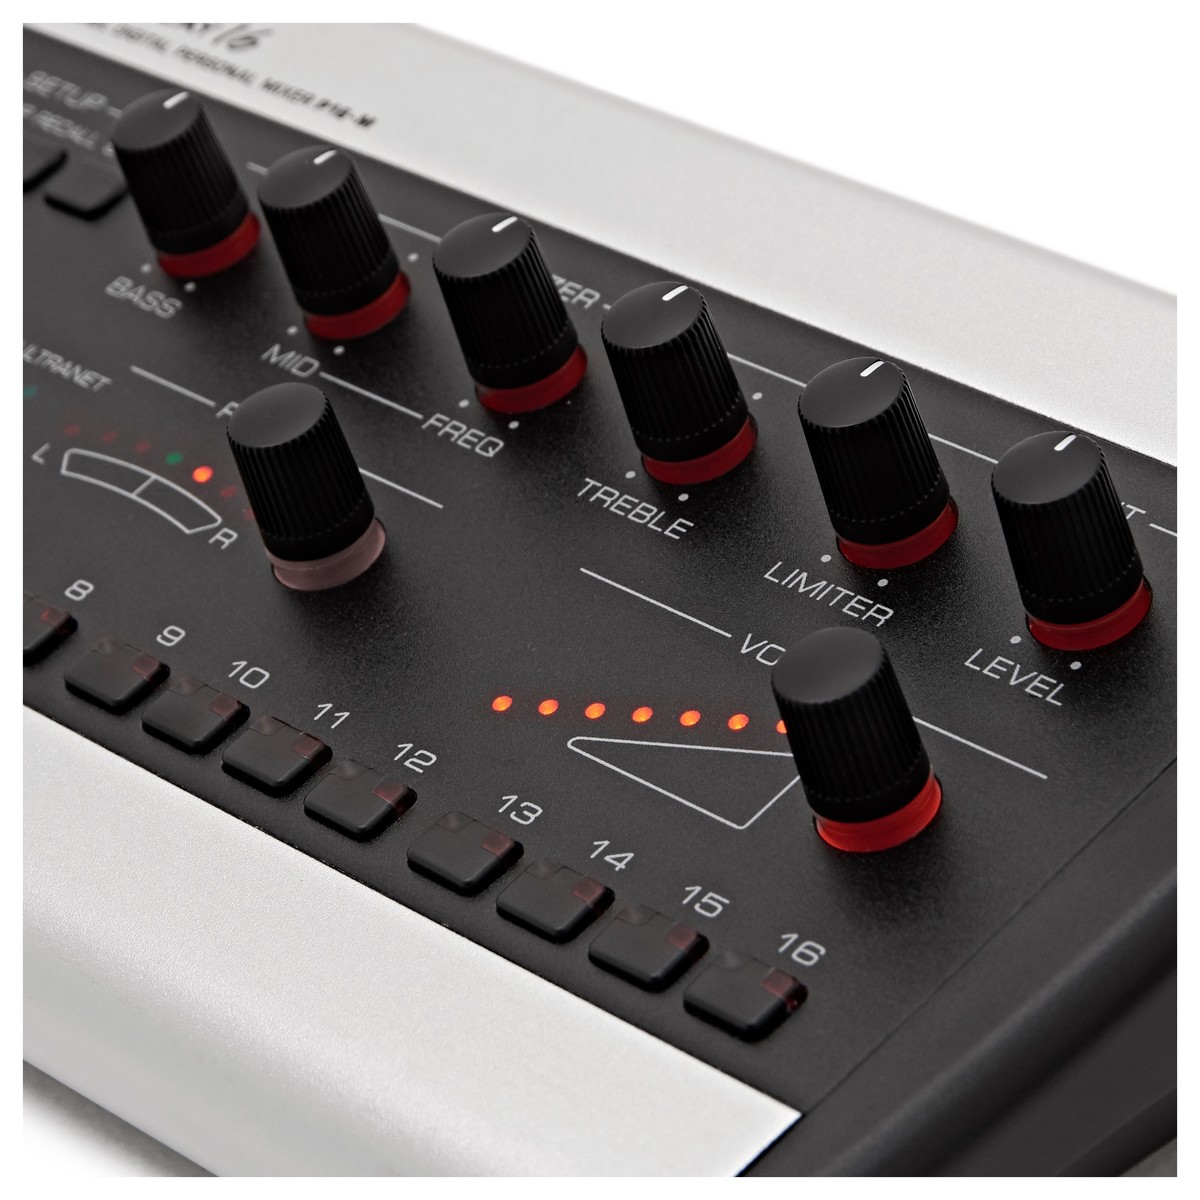 Behringer Powerplay P16 M Personal Mixer At Gear4music X32 Rack Live Performance Setup With S16 And Monitor System